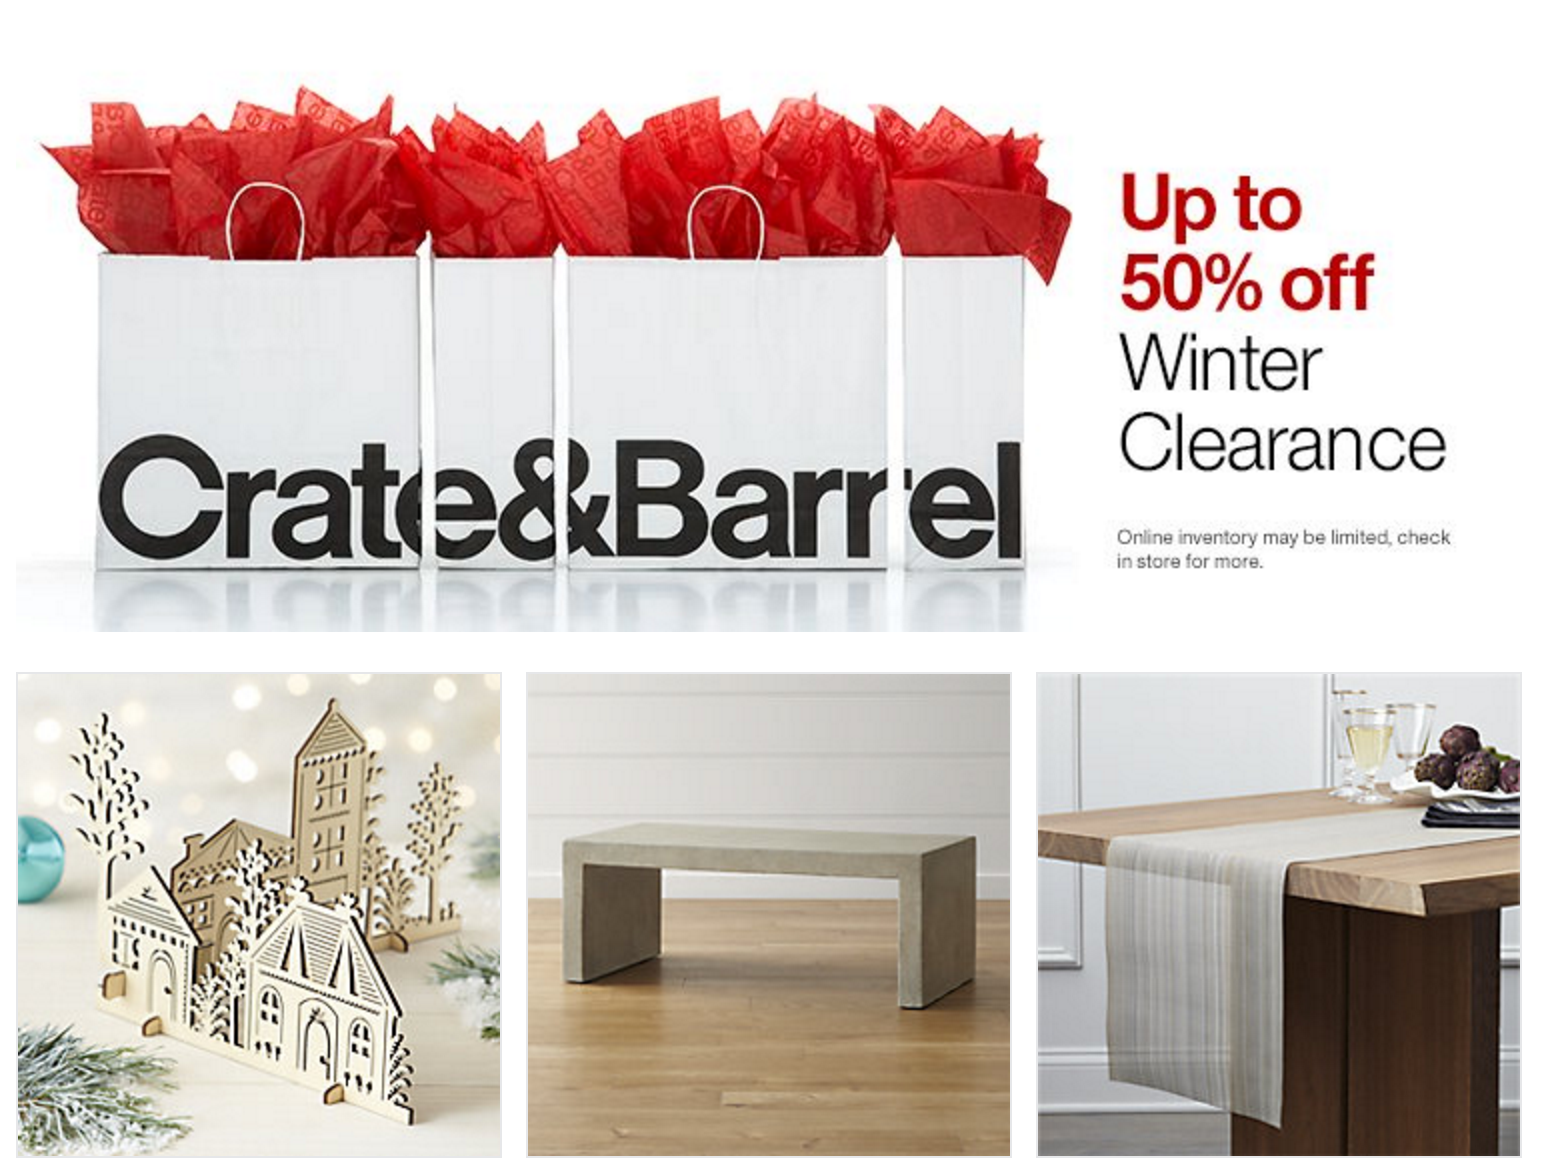 Crate and barrel c